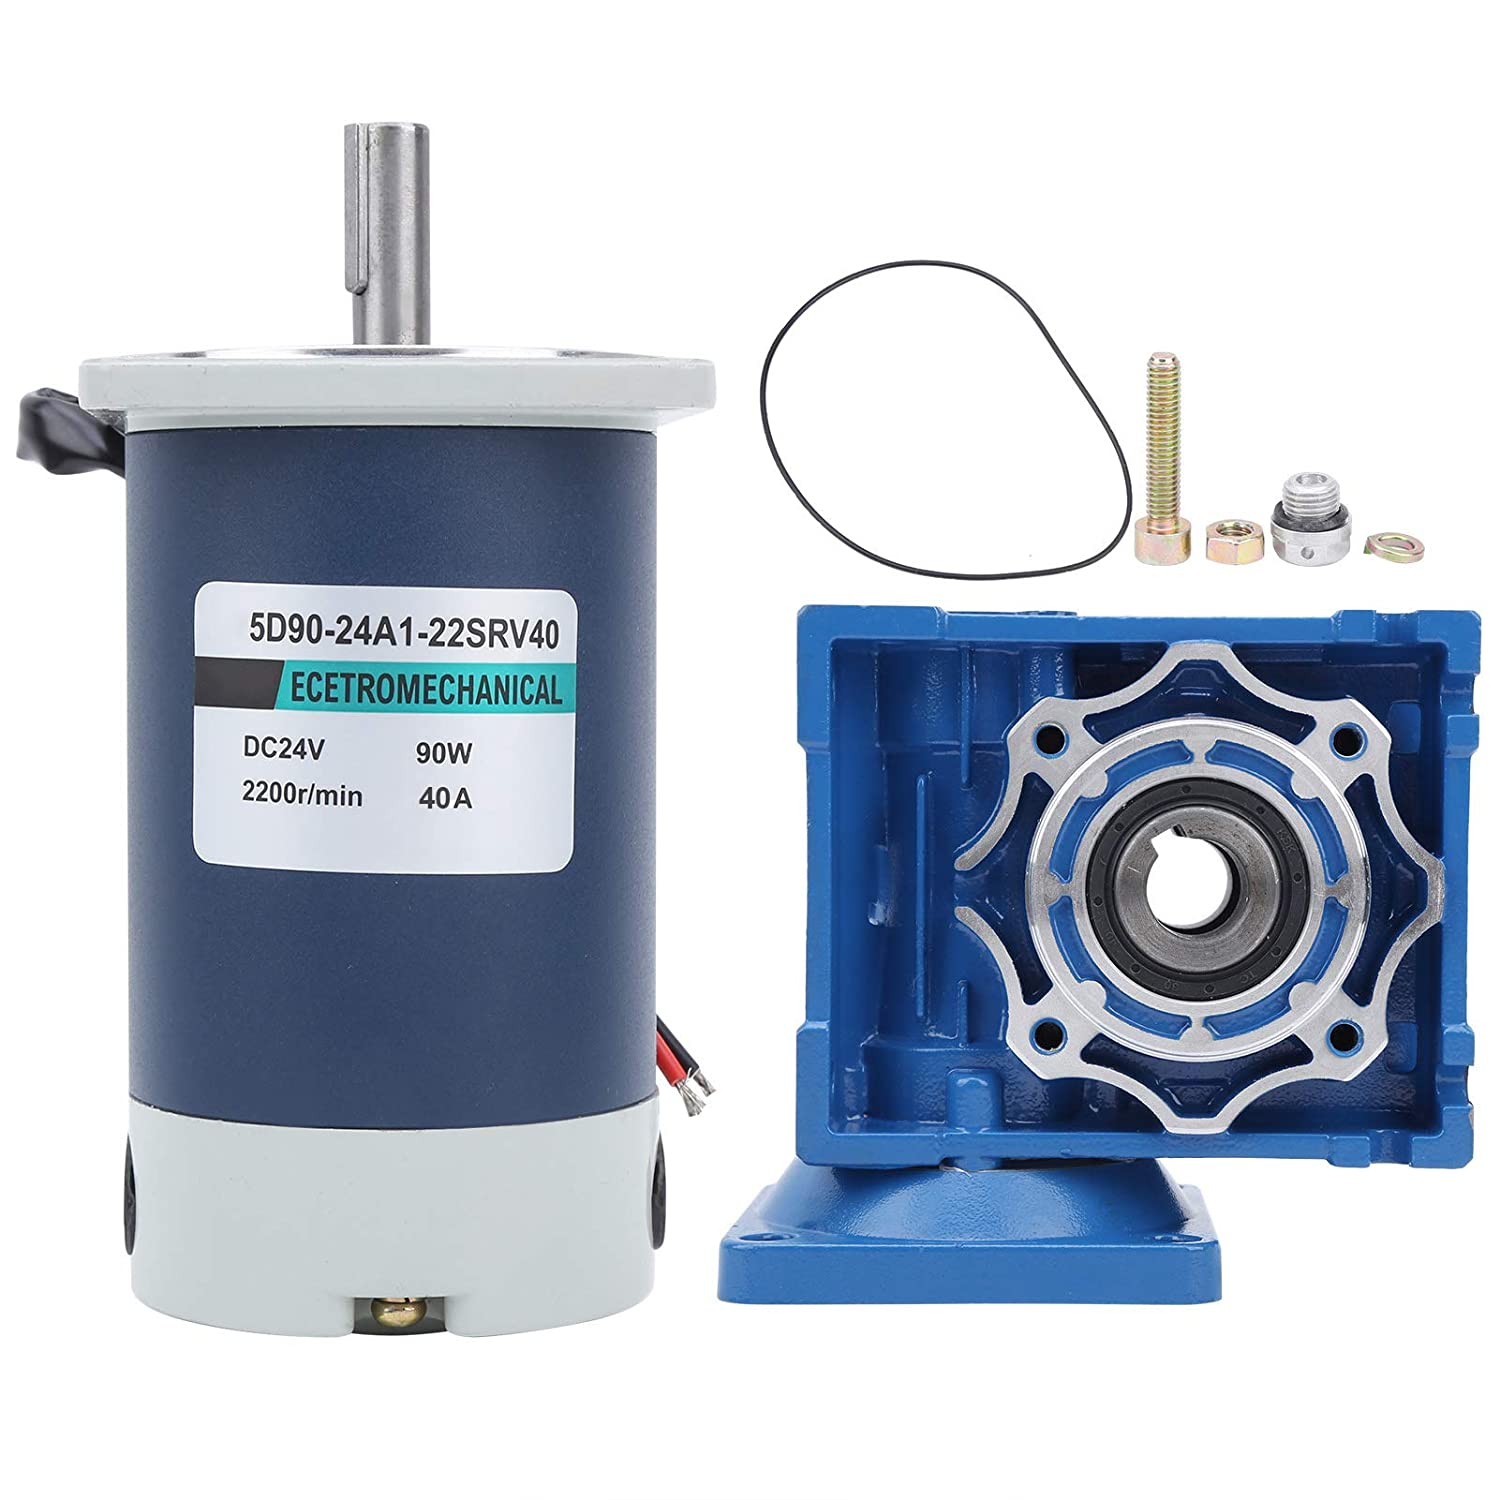 Gear Motor with Outstanding A Gearbox Life Service Long for Sta Max 59% OFF